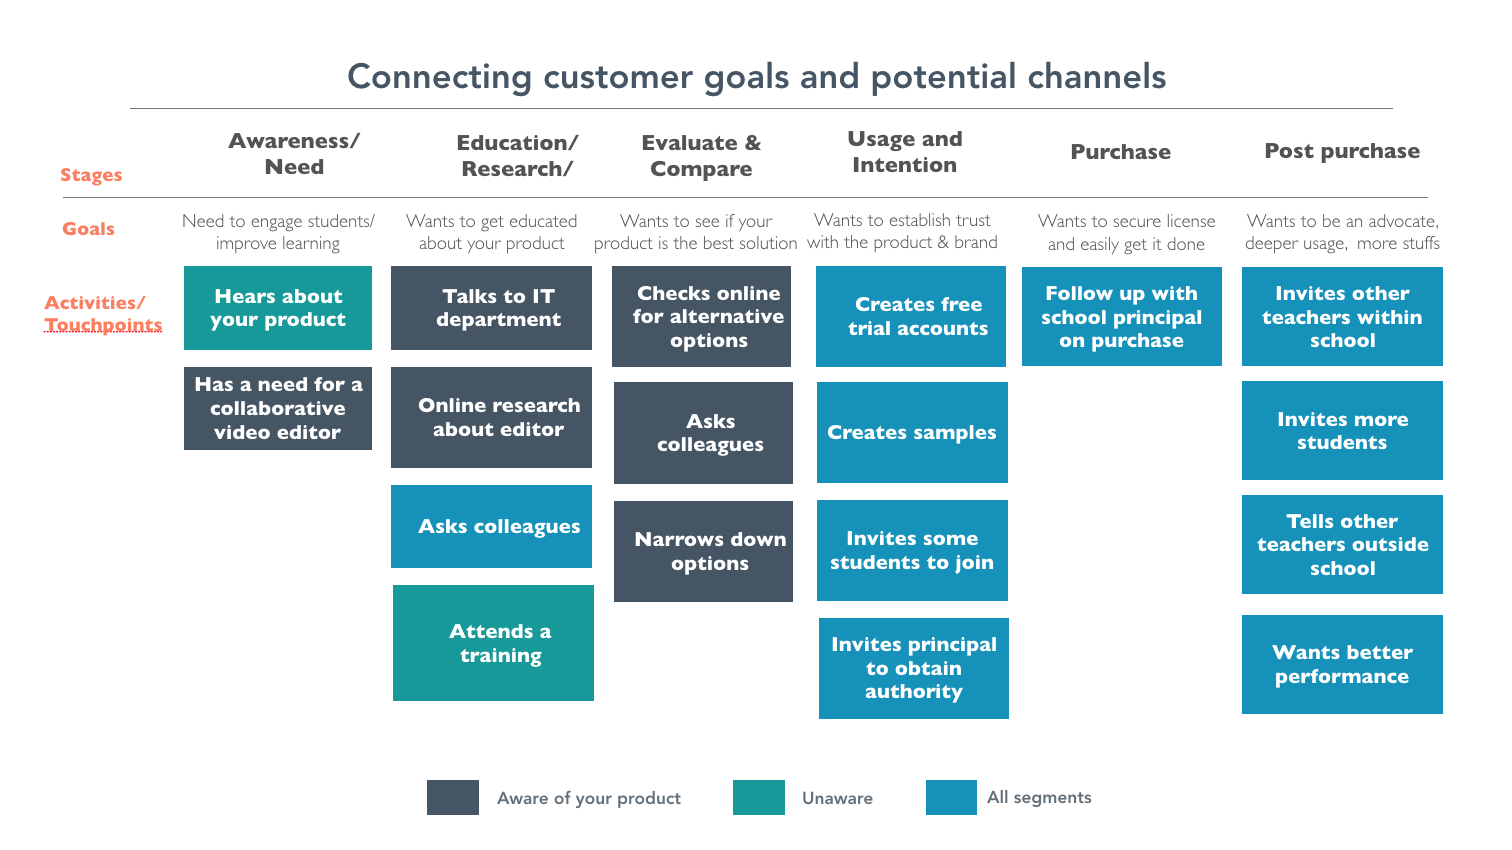 Connecting customer goals